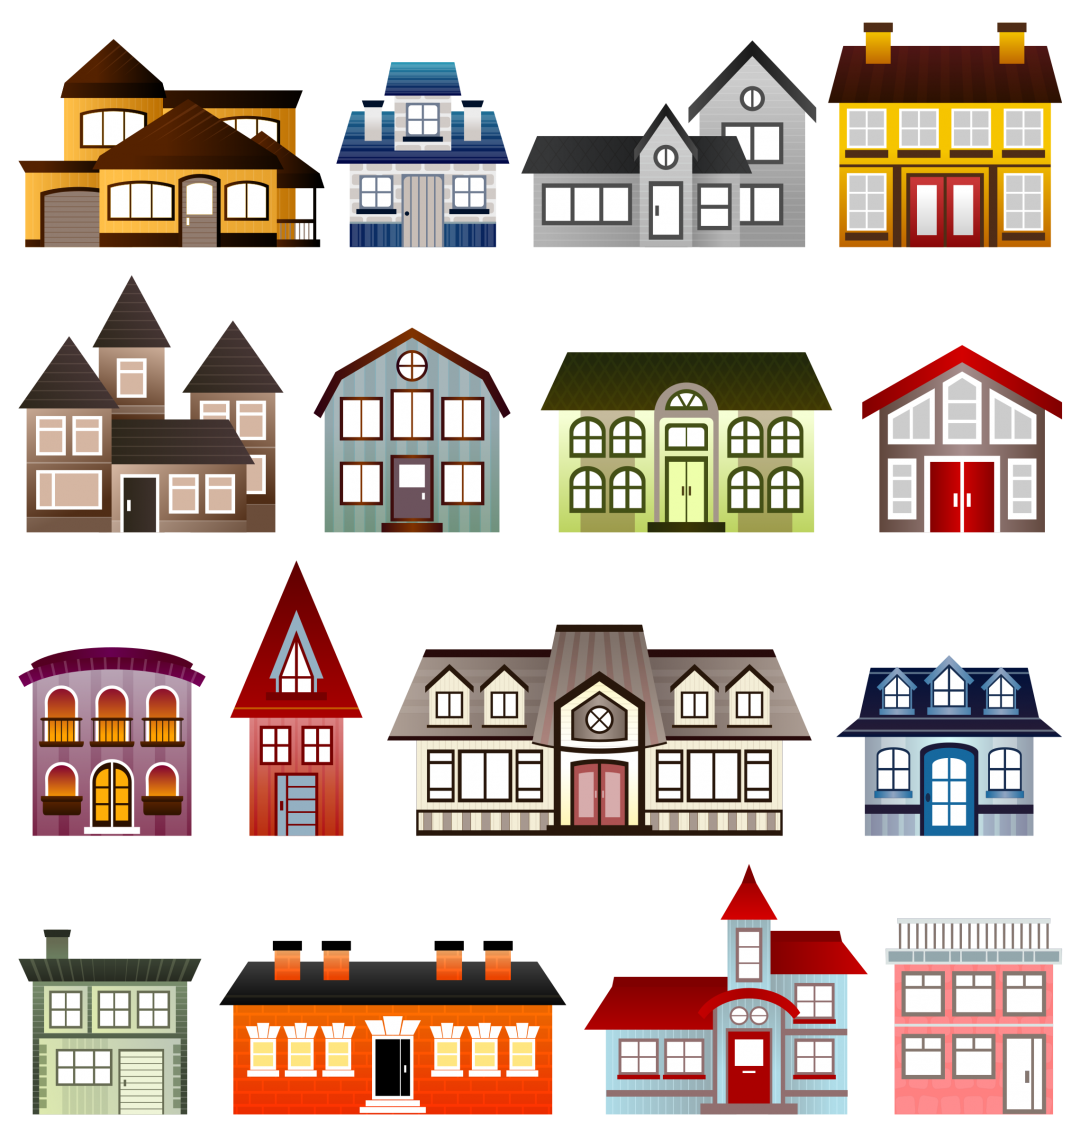 Inside the house clipart banner library download Inside House Clipart Plan Images Free Clipartingcom Clip Art Cartoon ... banner library download